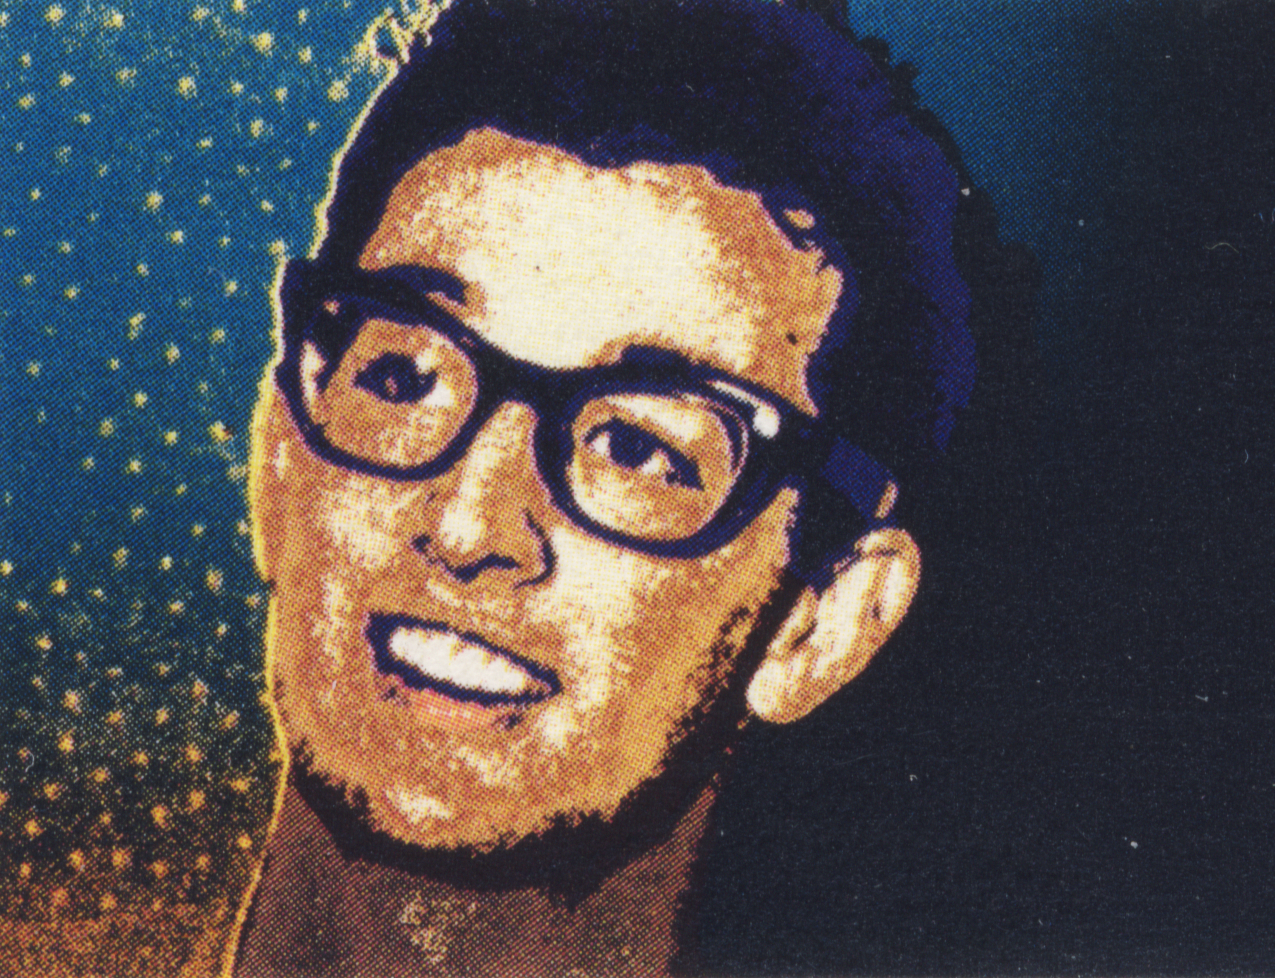 stamp with buddy holly on it